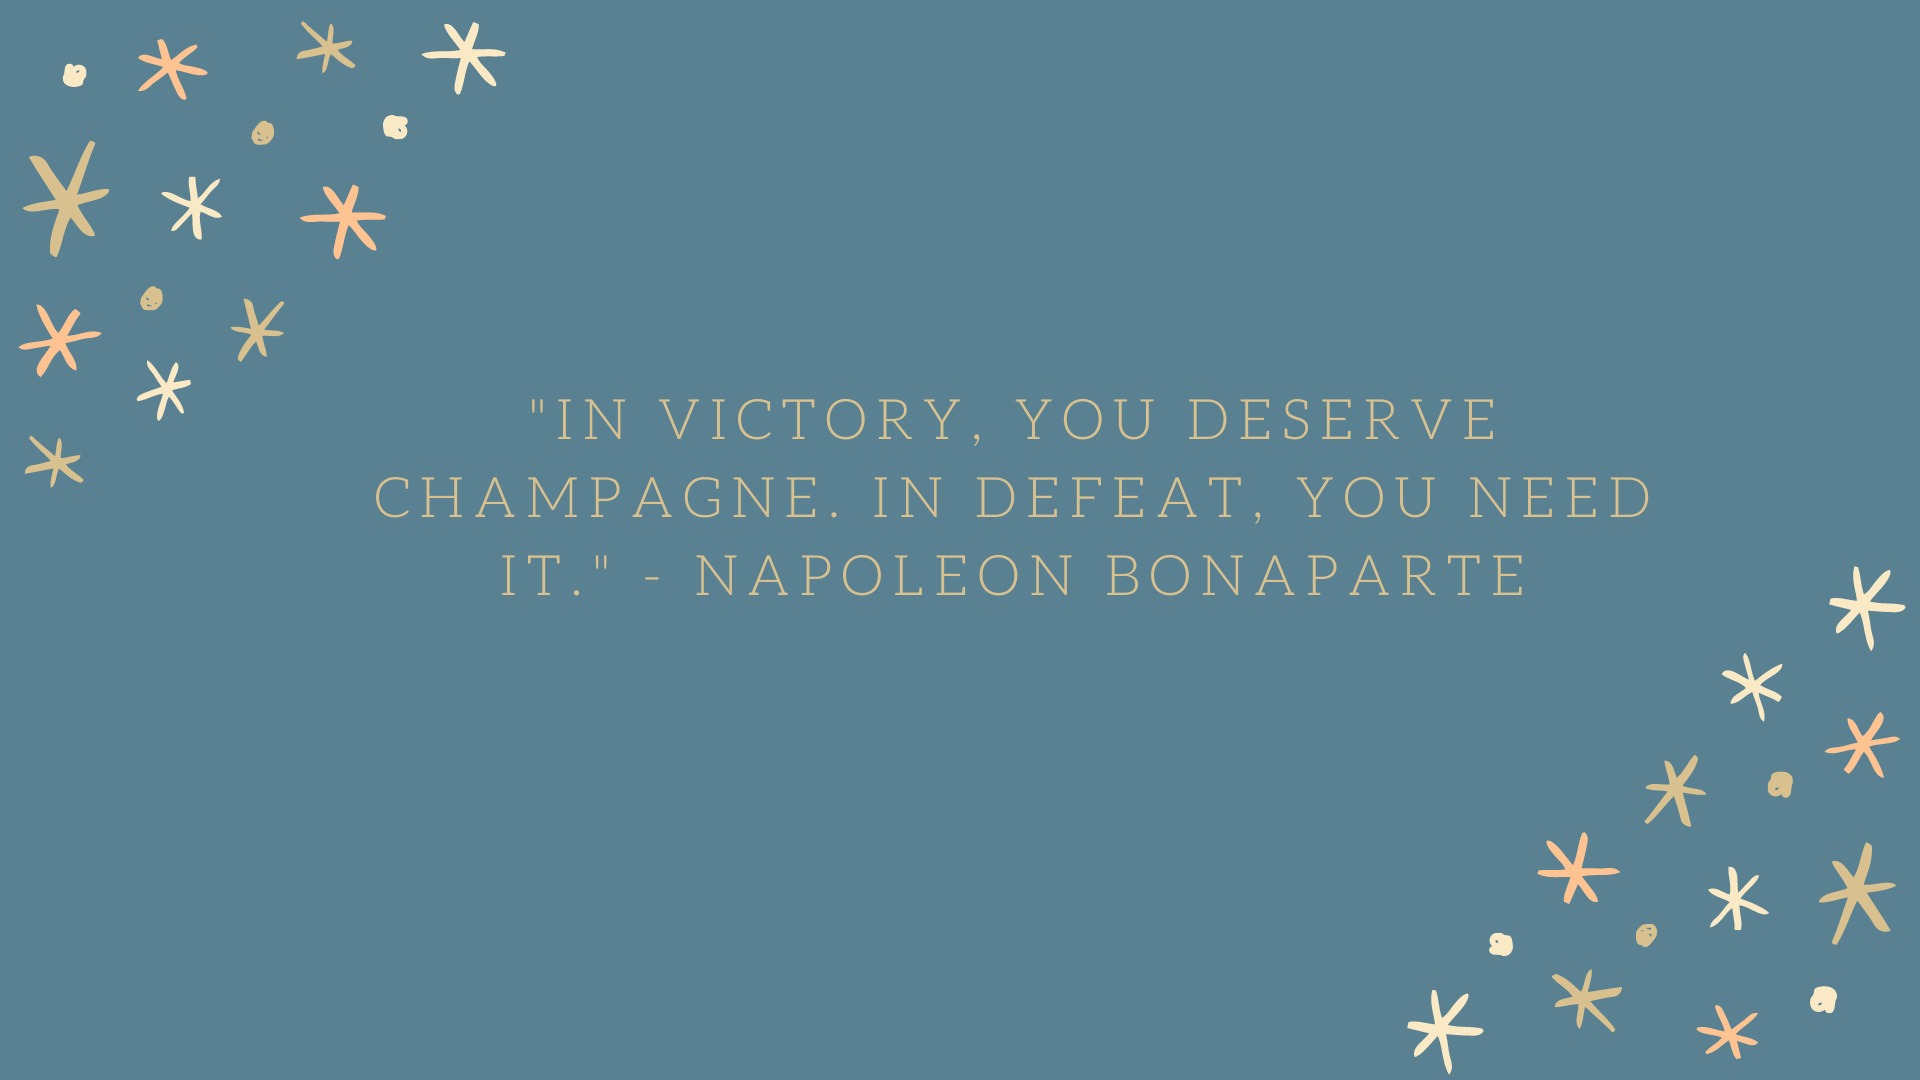 n victory, you deserve champagne. In defeat, you need it. | Napoleon Bonaparte